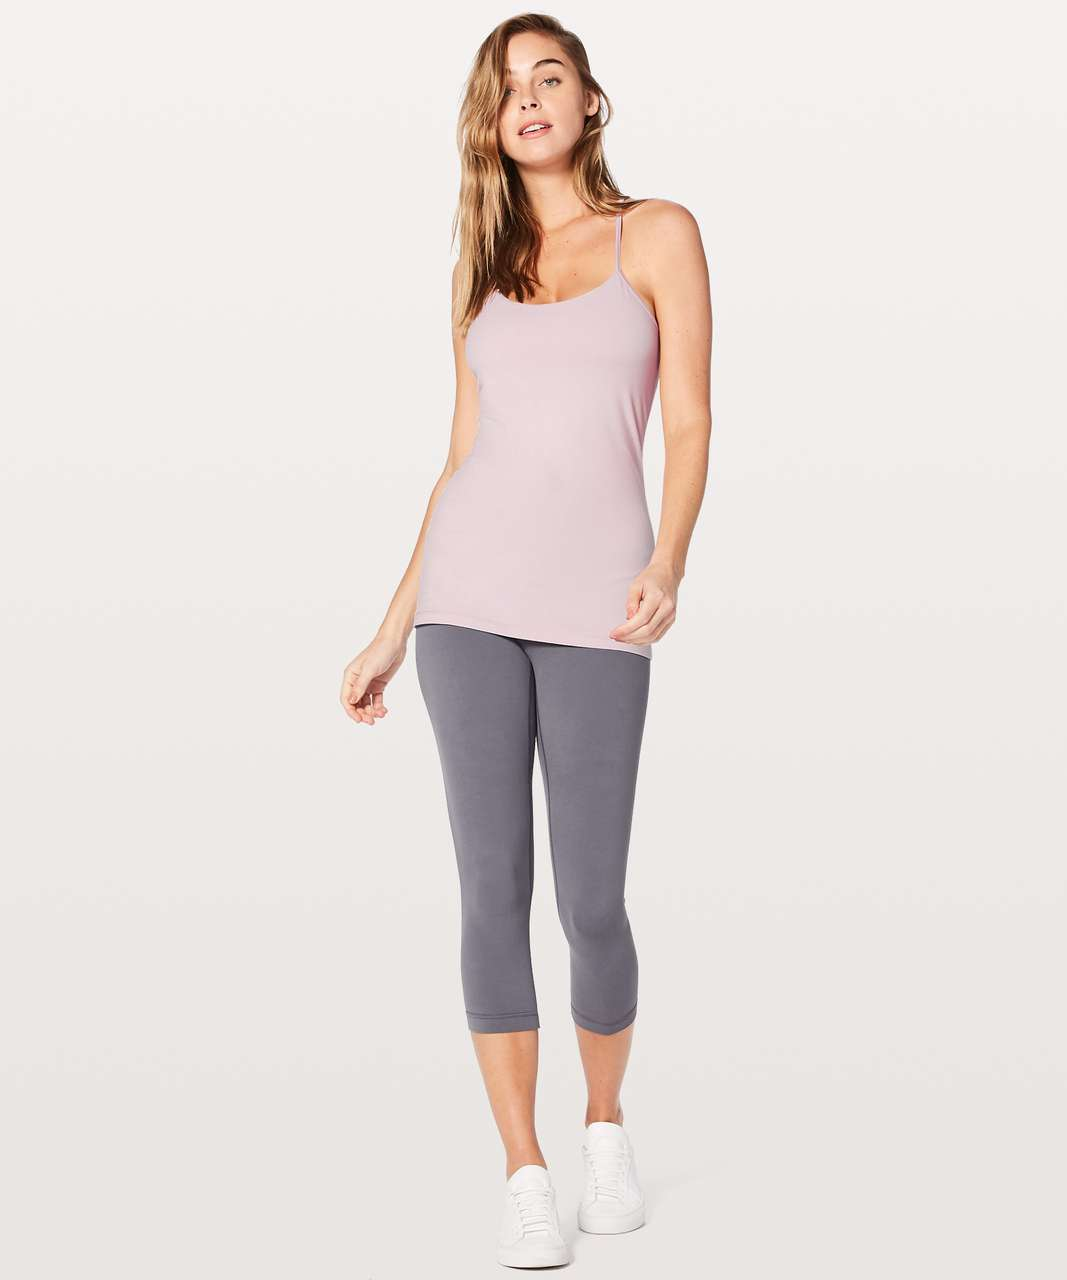 Lululemon Power Pose Tank *Light Support For A/B Cup - Porcelain Pink